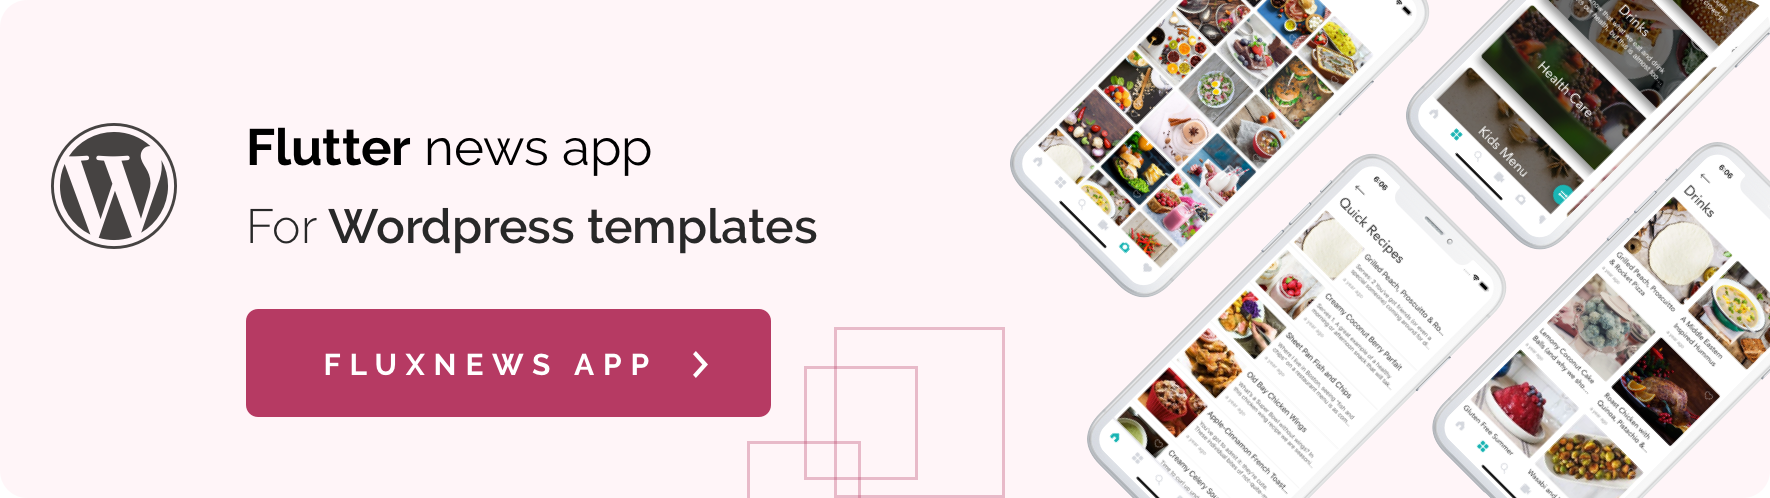 MStore Pro - Complete React Native template for e-commerce - 36